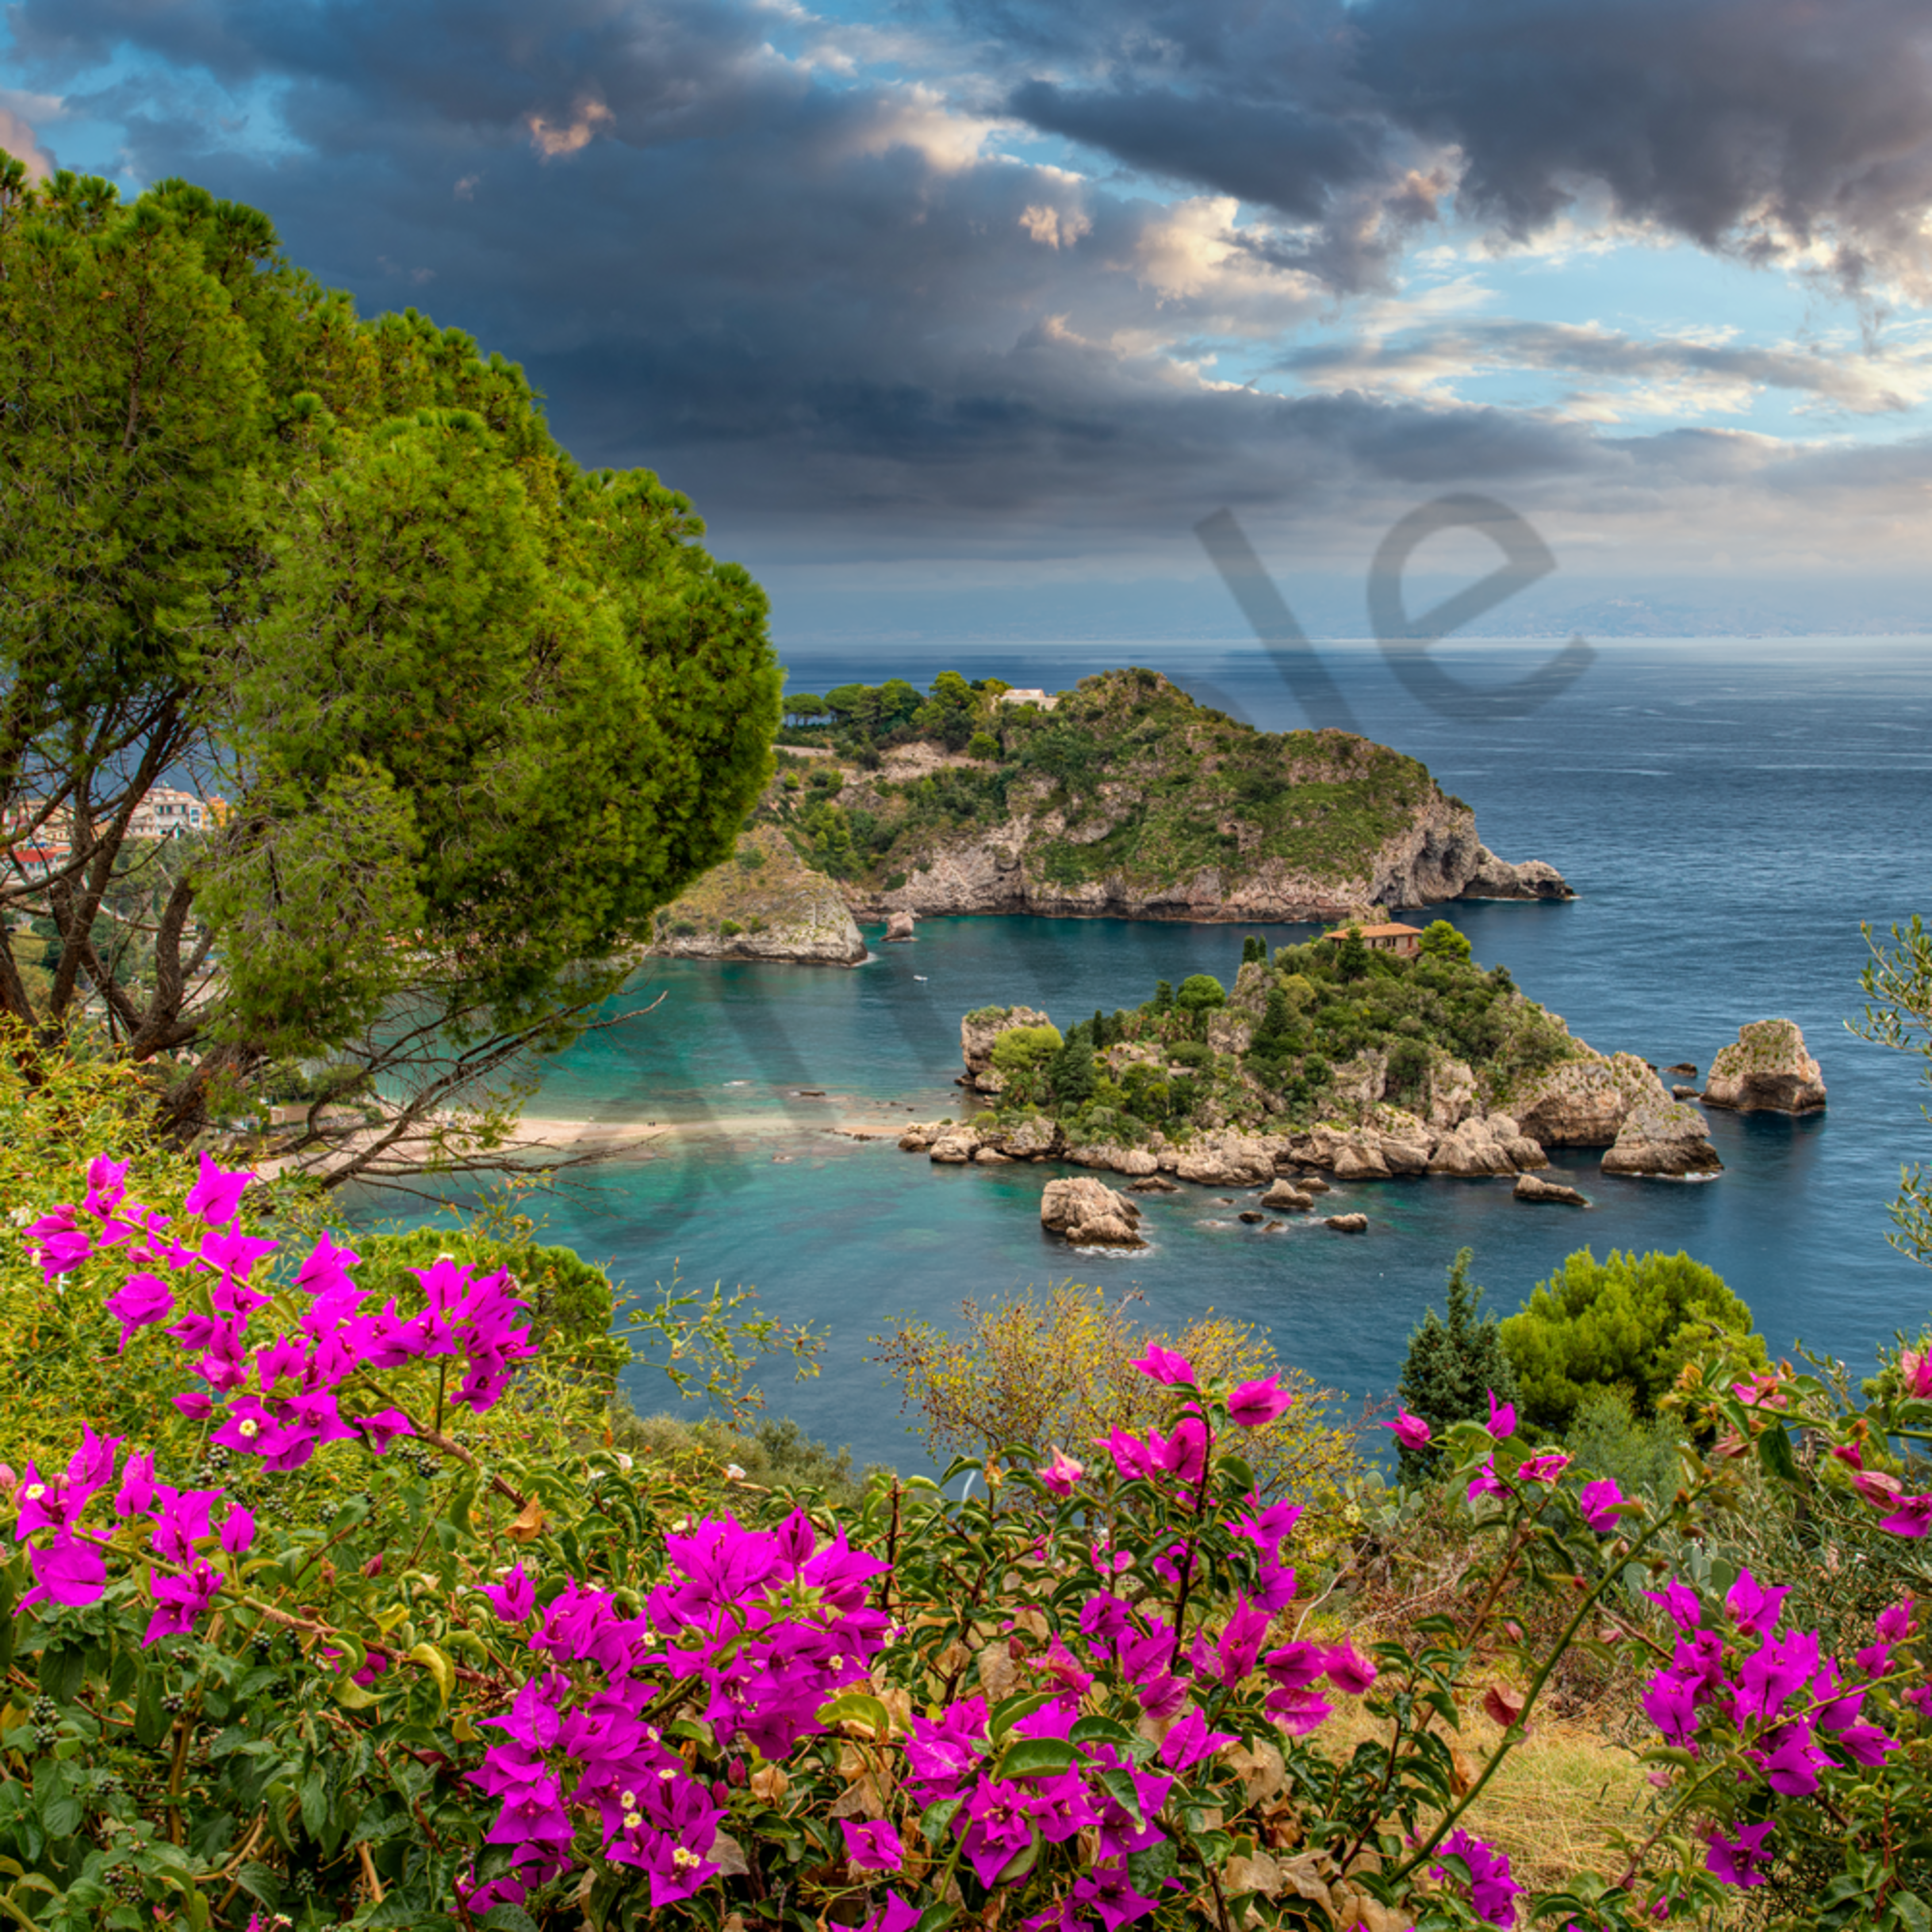 Isola bella with bougainvilleas taormina sicily italy nkzkzs